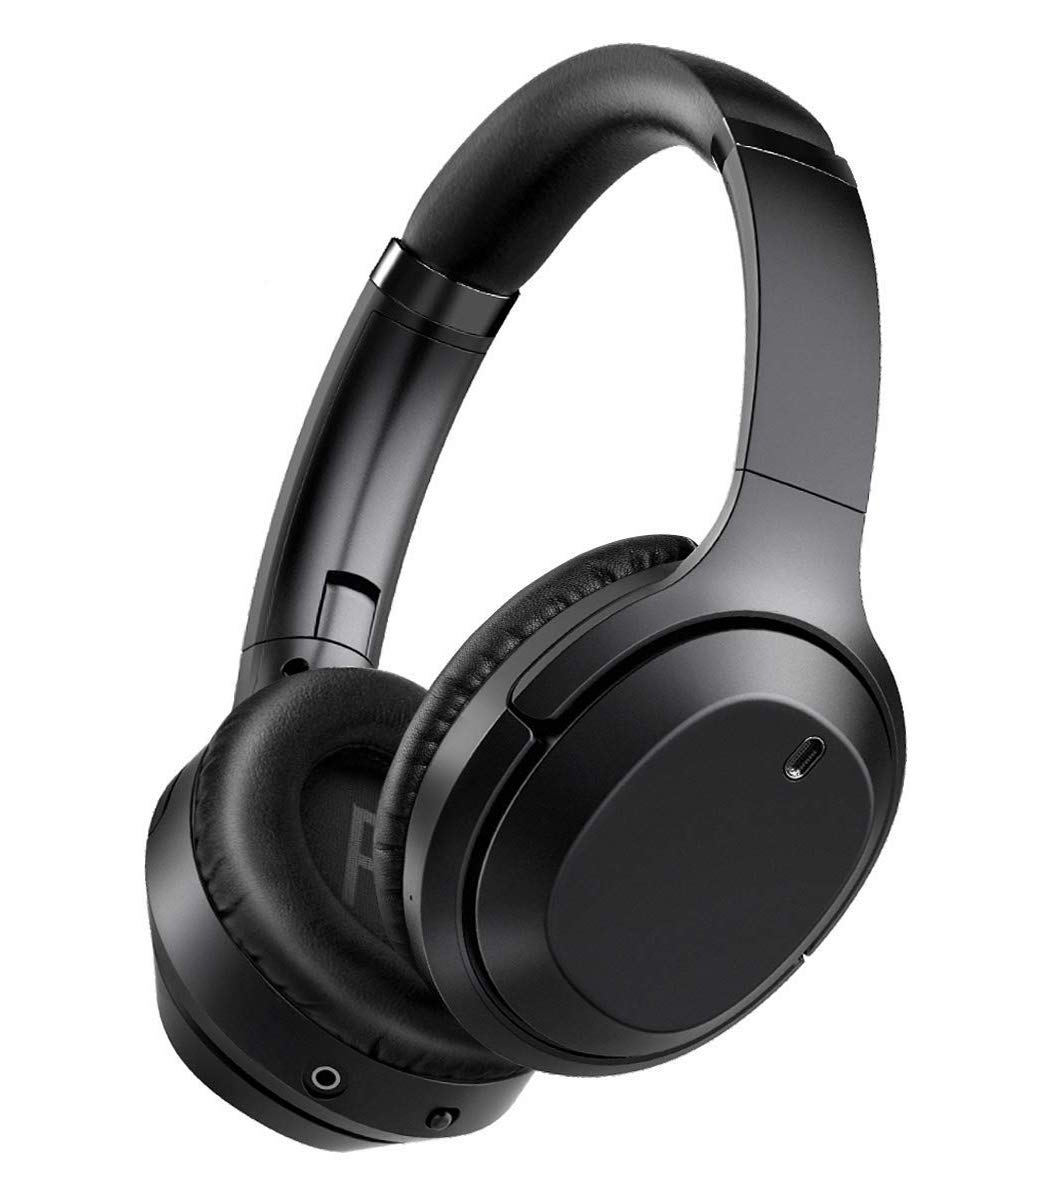 gorsun Bluetooth Headphones Over Ear, Wireless Headphones, Foldable Hi-Fi Stereo, Soft Memory Protein Earmuffs, Built-in Microphone & Wired Mode for Cellphone PC (Black)